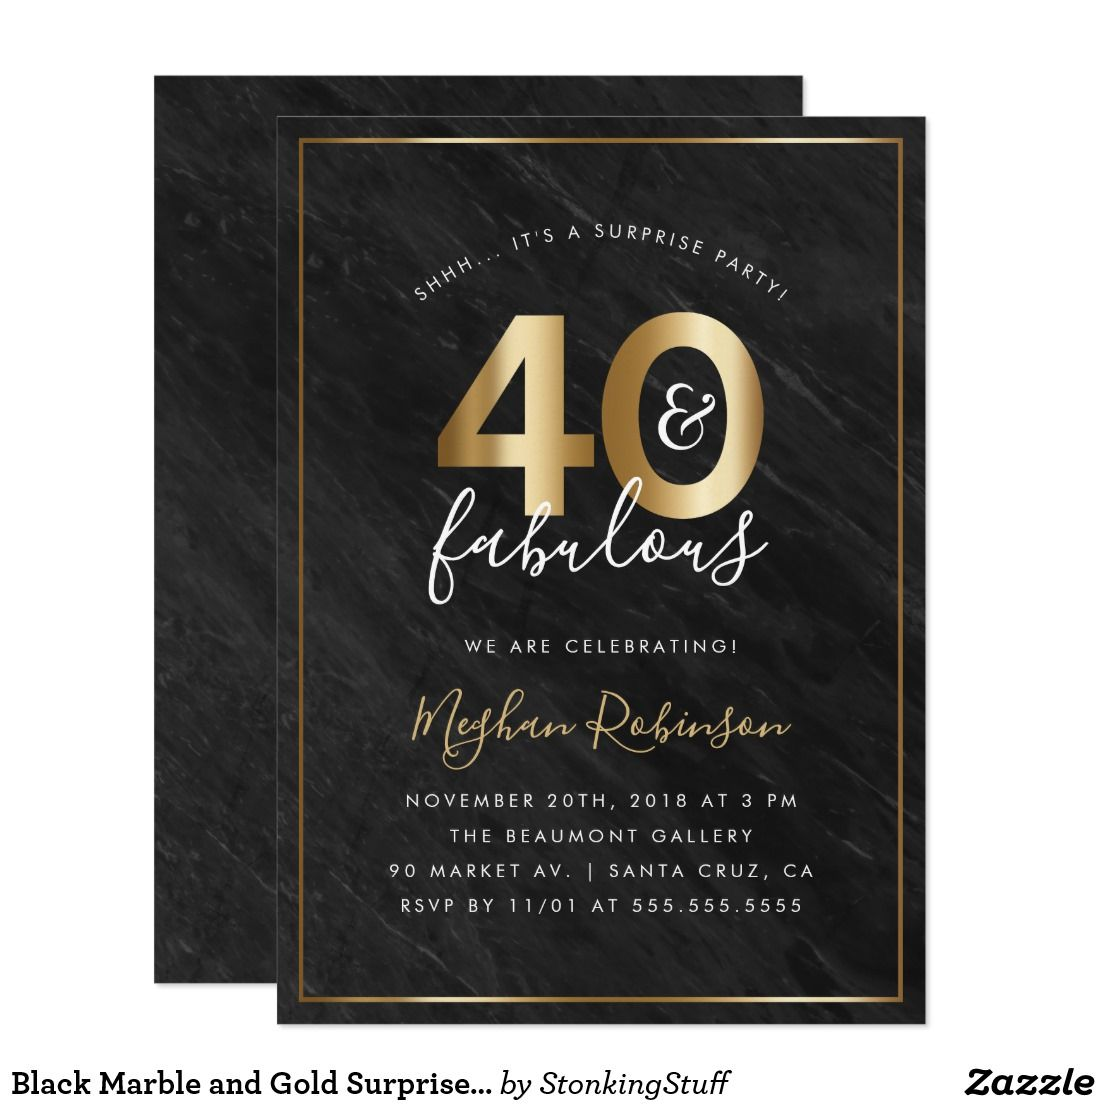 Black Marble and Gold Surprise 40th Birthday Party